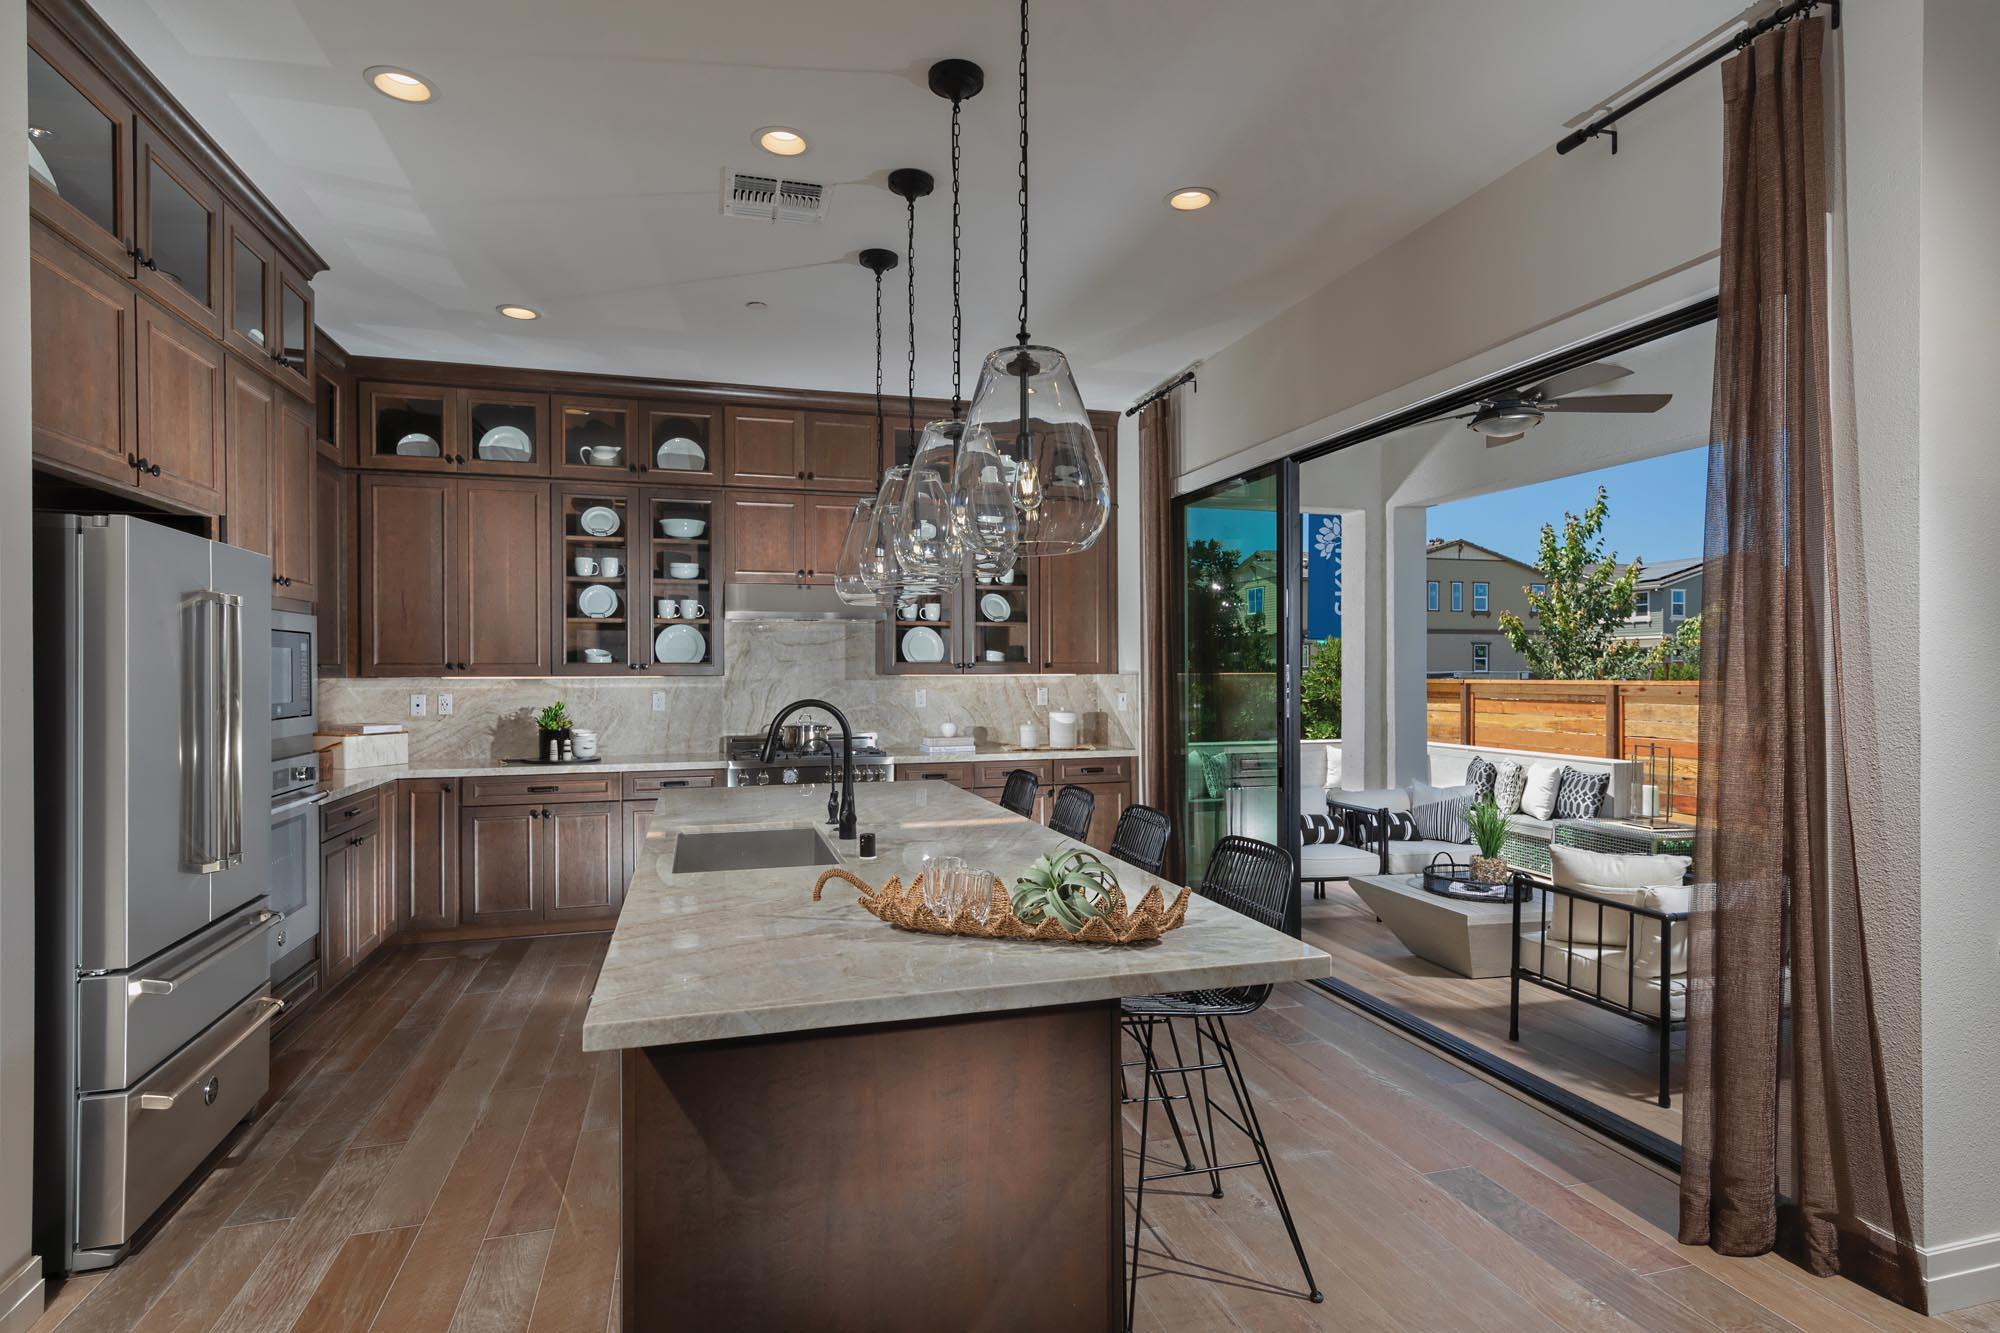 Kitchen featured in the Skylark Plan One By Landsea Homes in Oakland-Alameda, CA